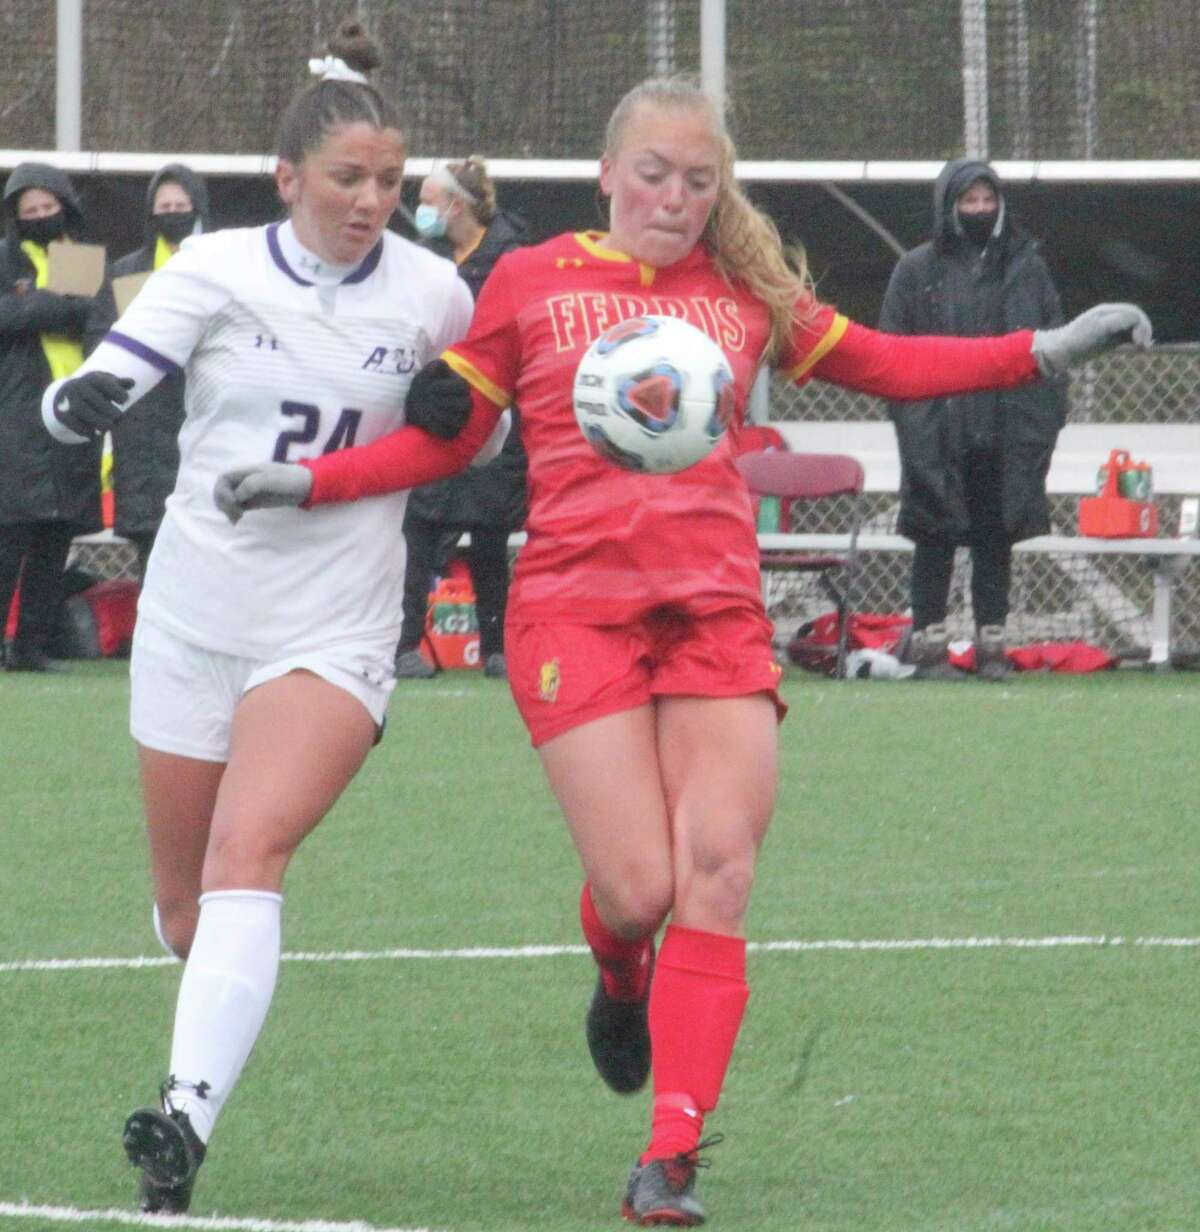 Mackenzie Dawes is among the Ferris players who has received prestigious academic recognition. (Pioneer file photo)